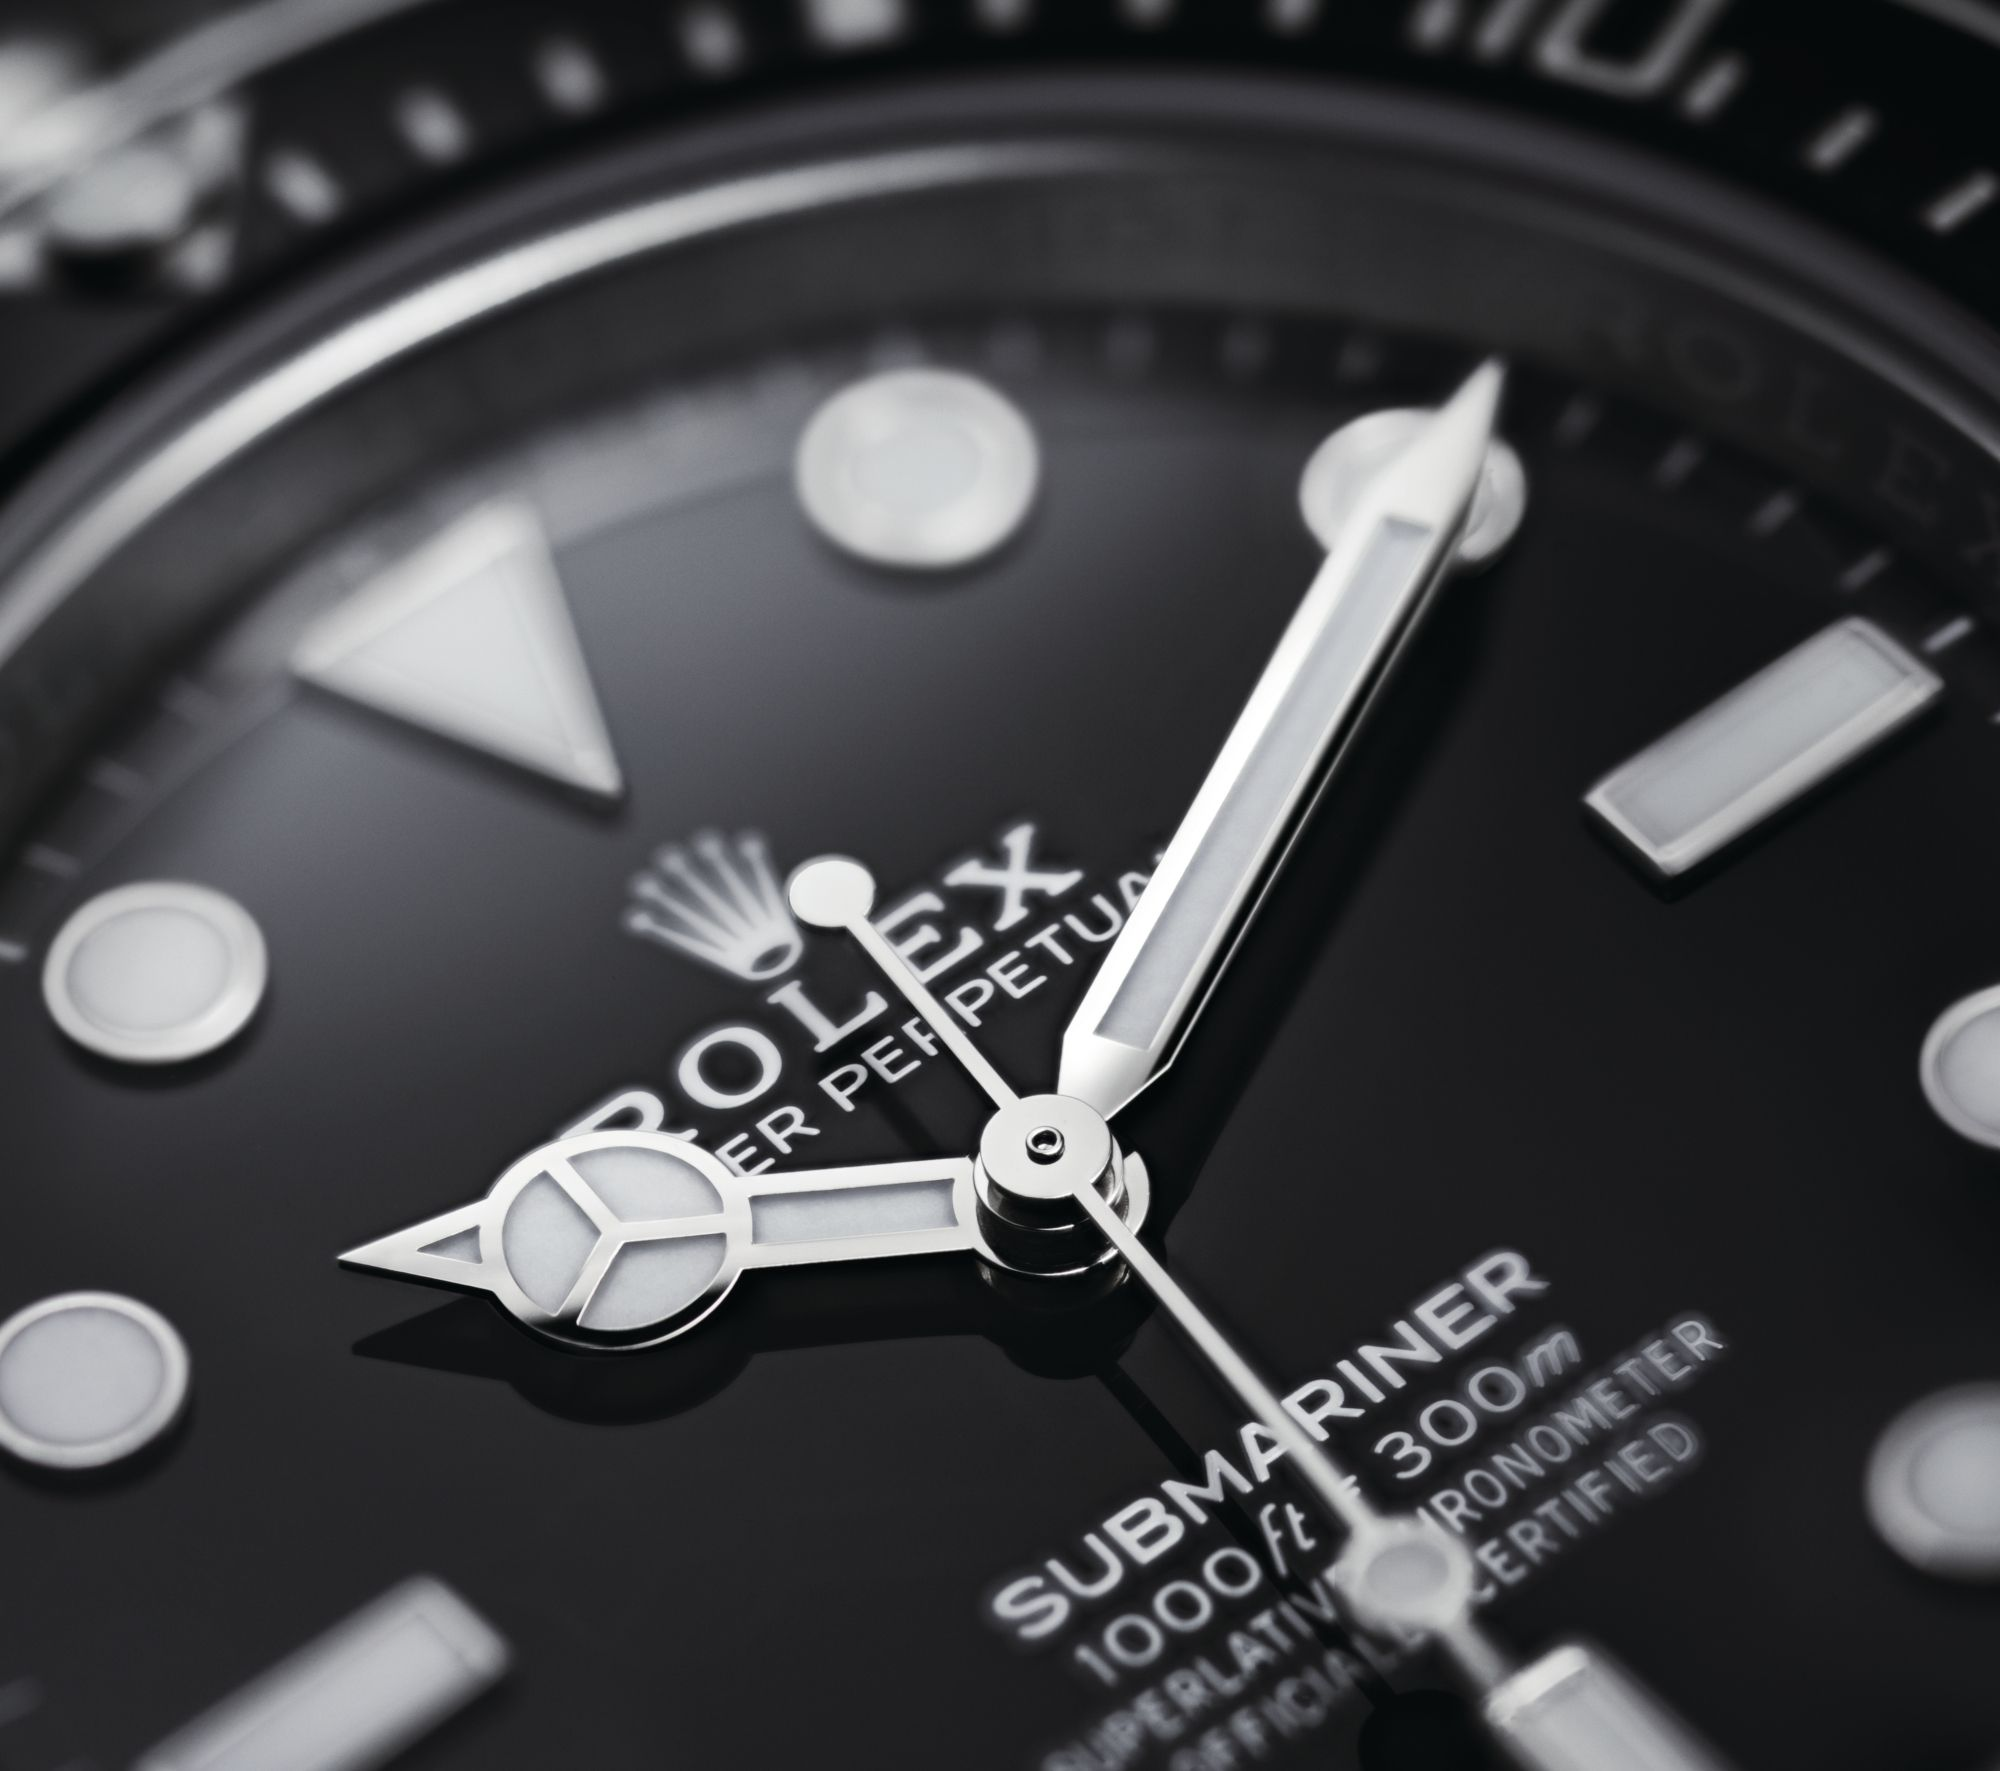 Meet The New Rolex Submariner and Submariner Date